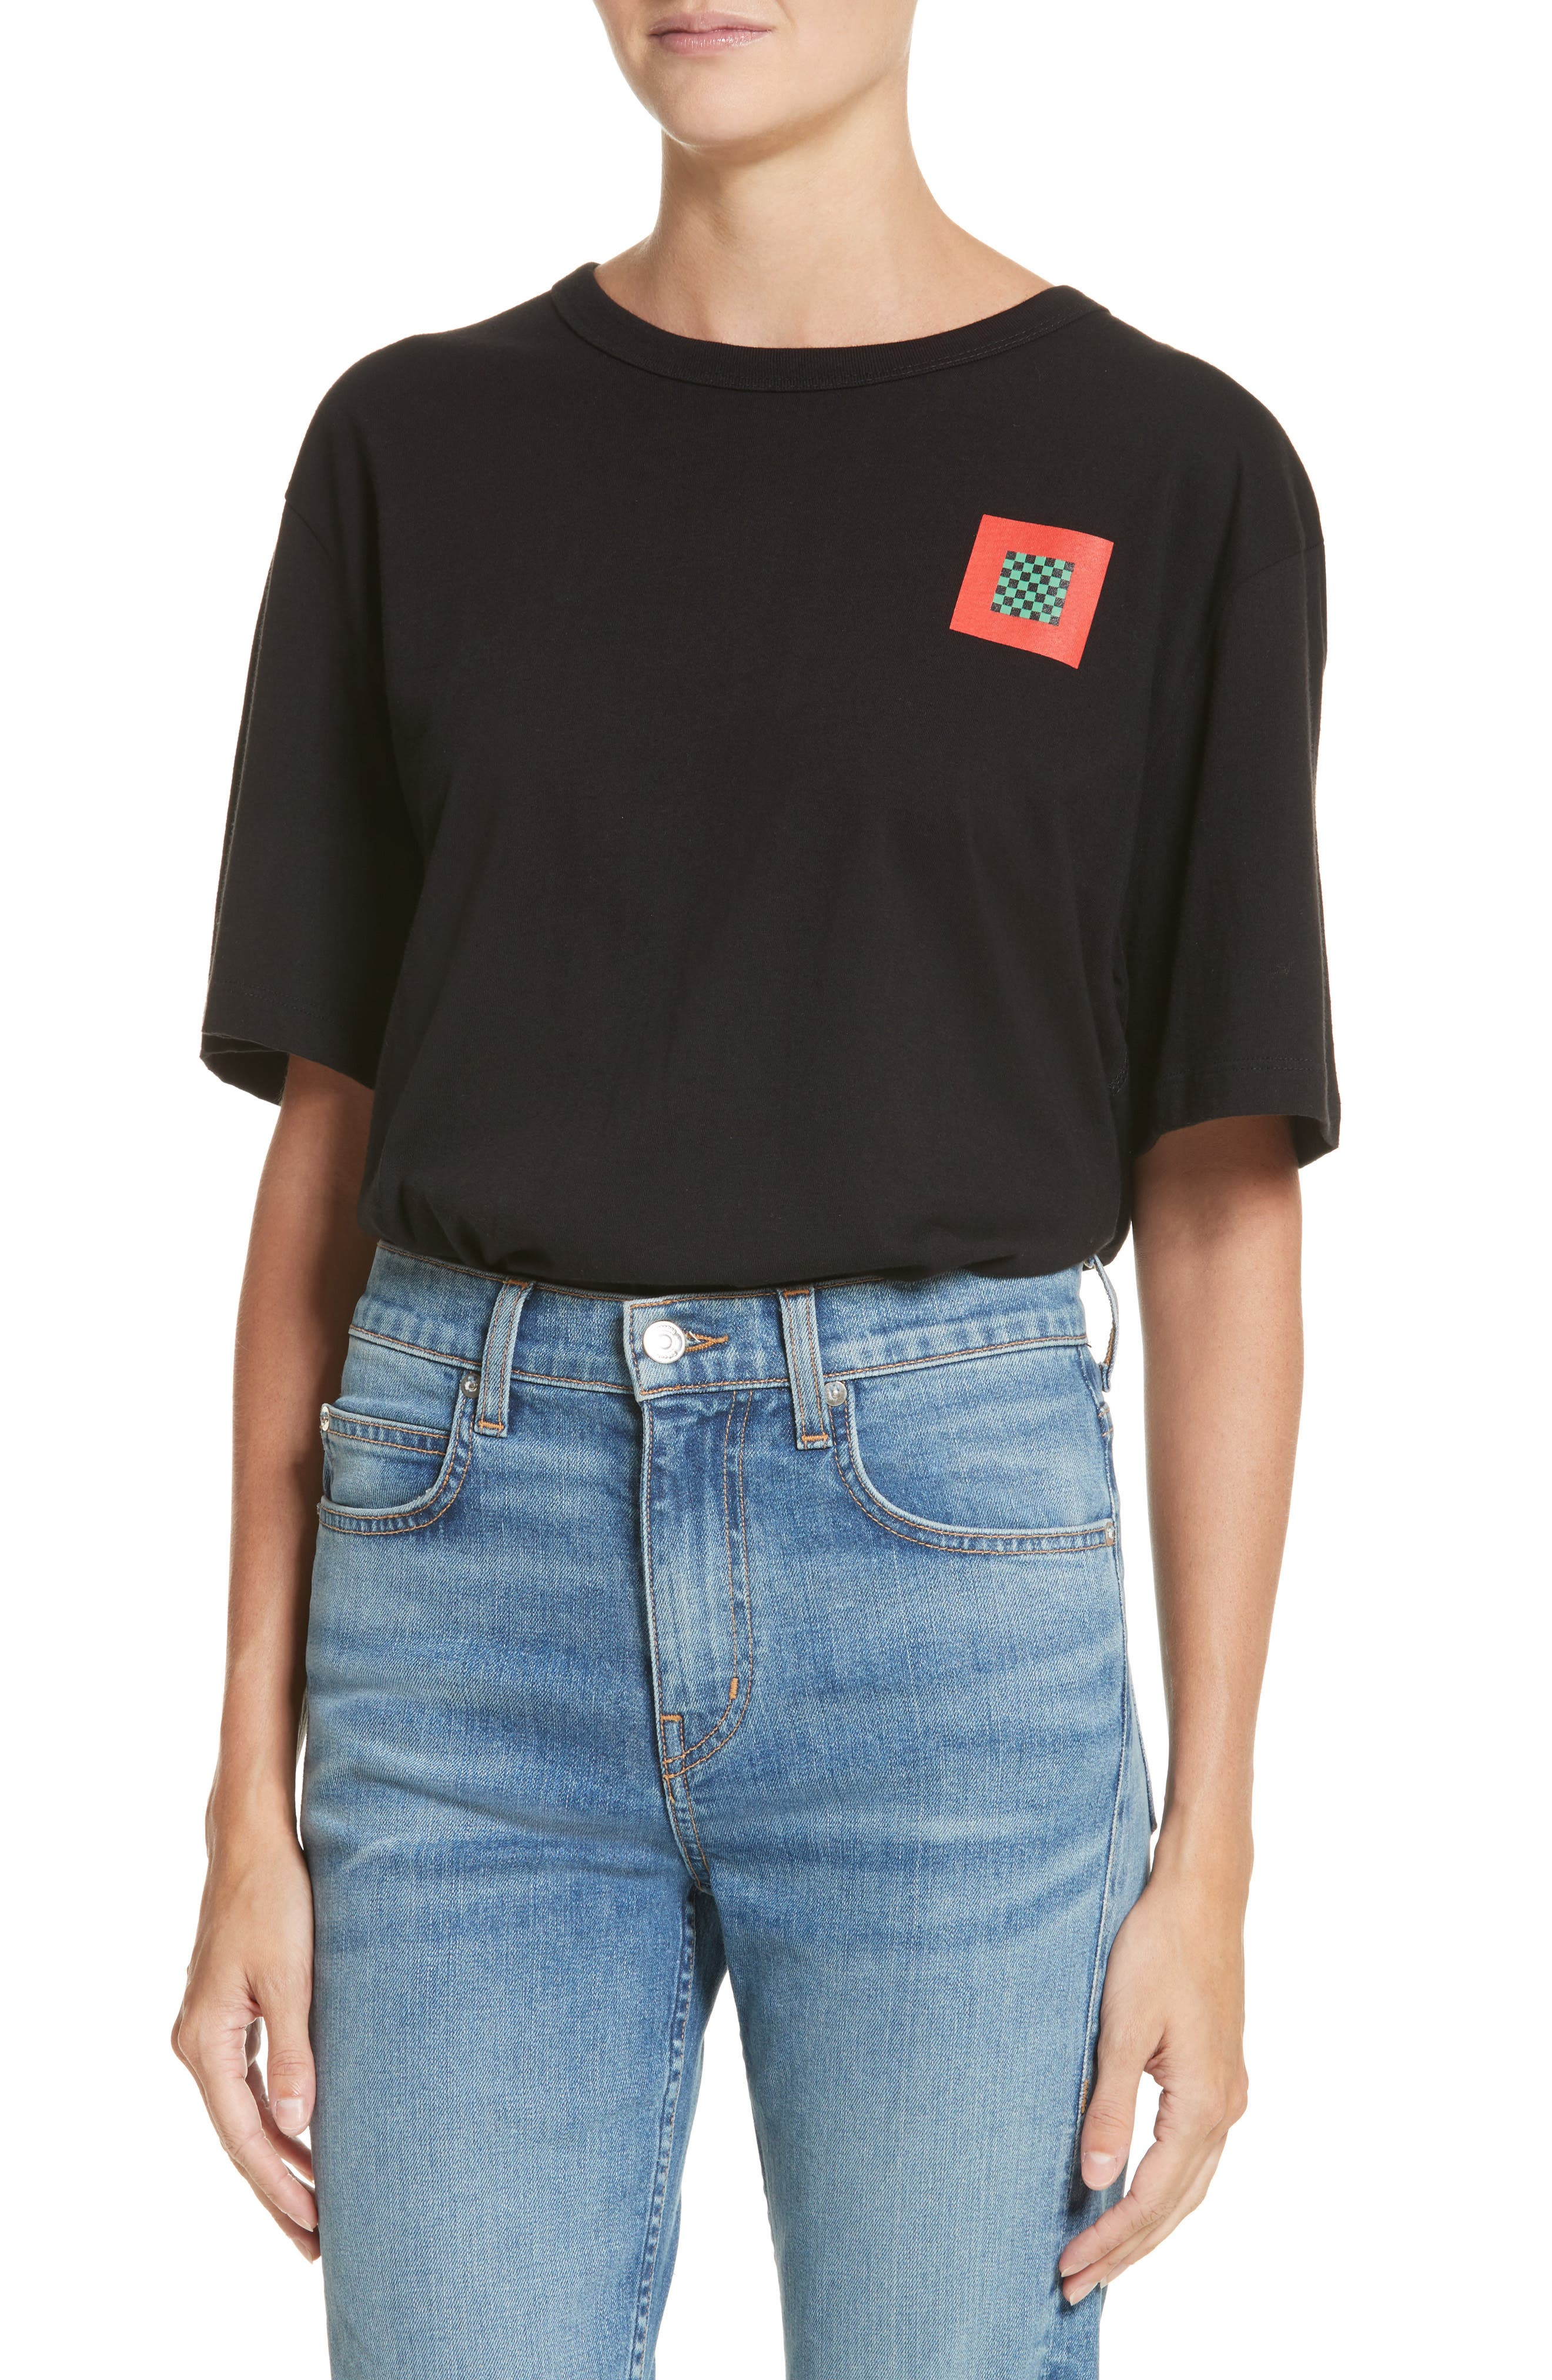 Alternate Image 1 Selected - Proenza Schouler PSWL Graphic Jersey Tee